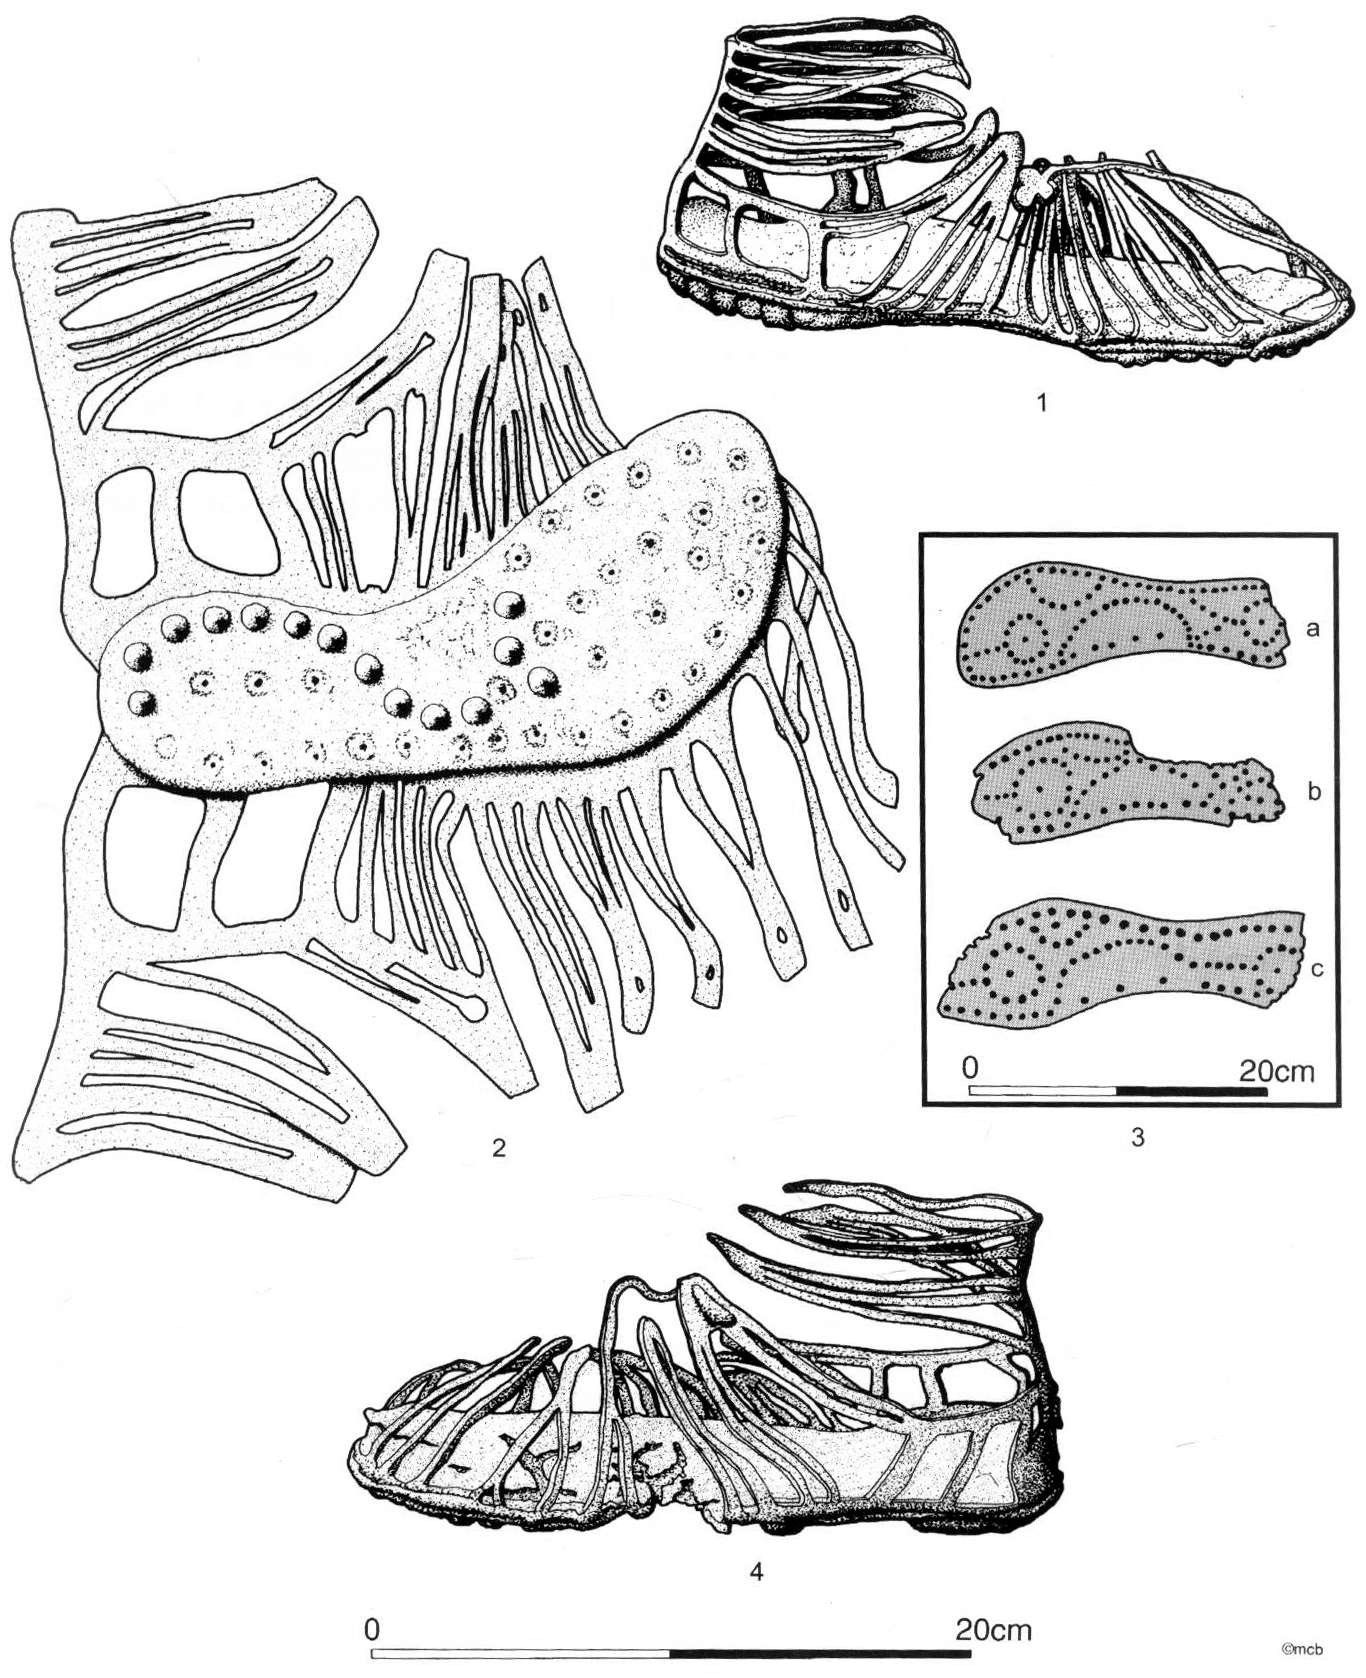 Pin by Gg on sca idea stuff | Roman sandals, Design your own